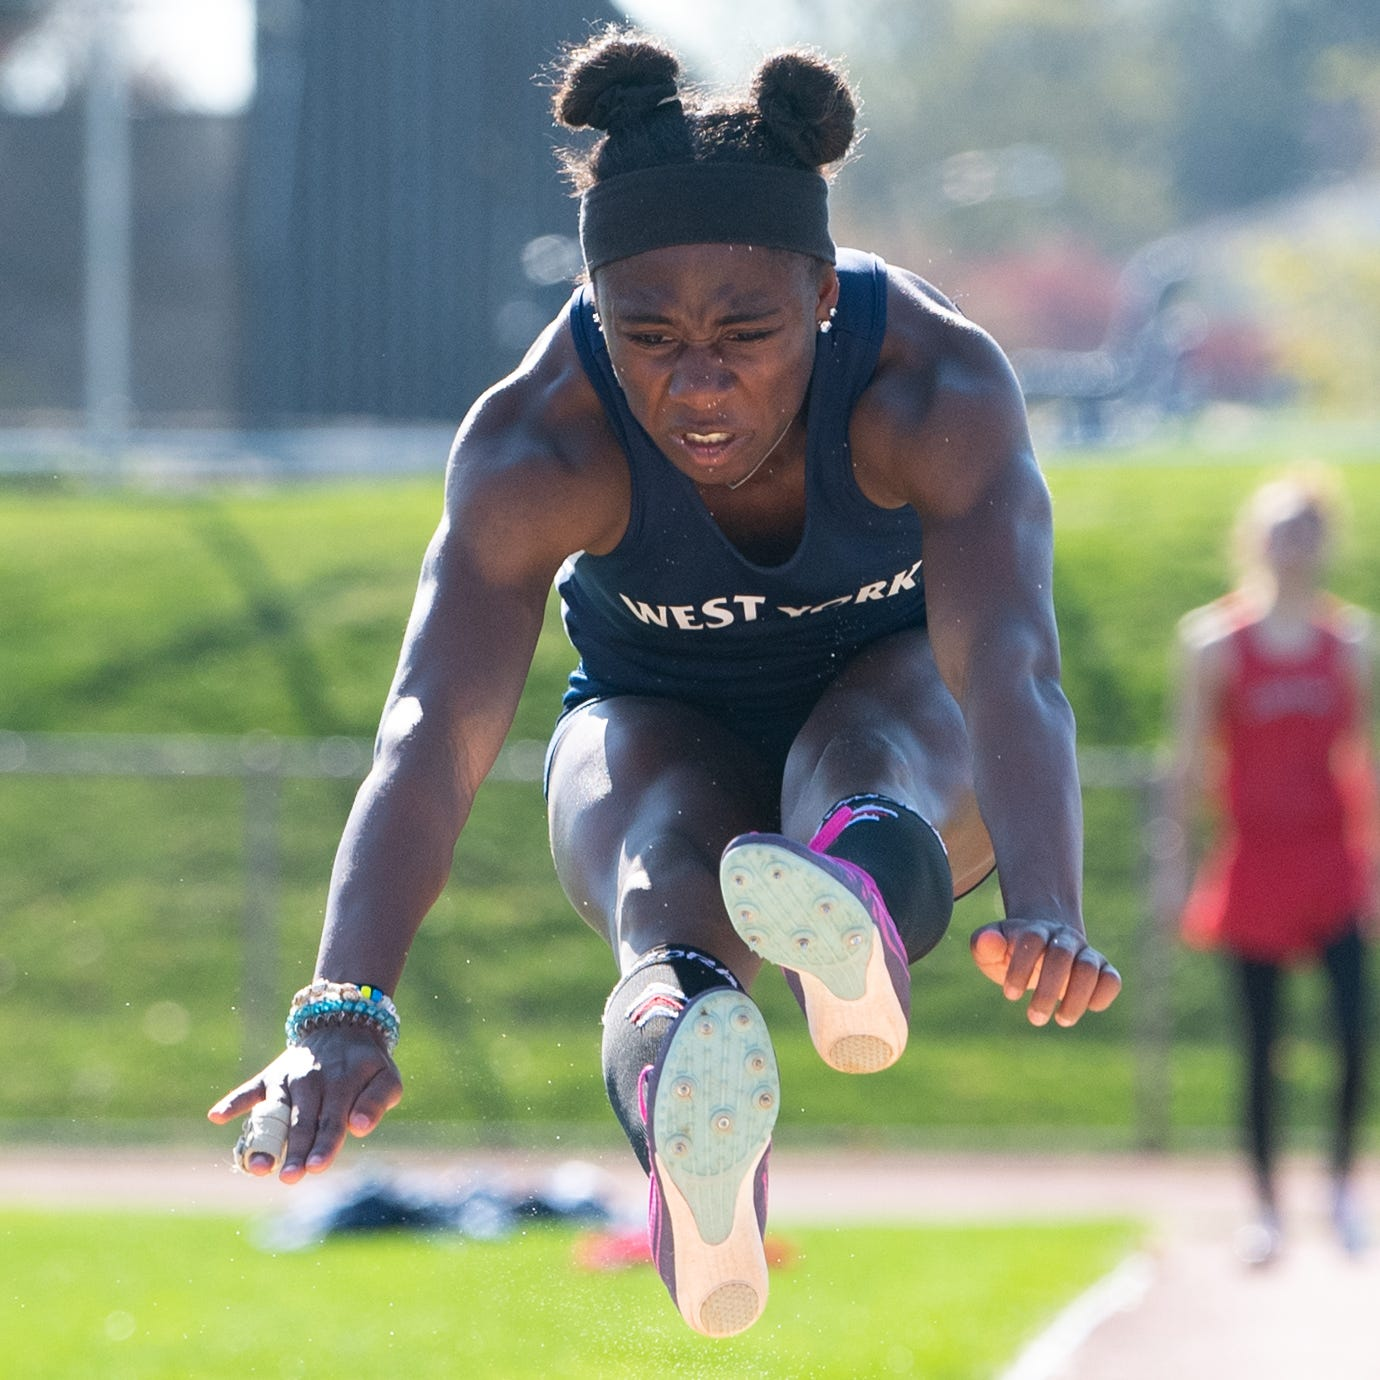 'She's got everything': Why West York's 3-sport track star keeps adding to her workload